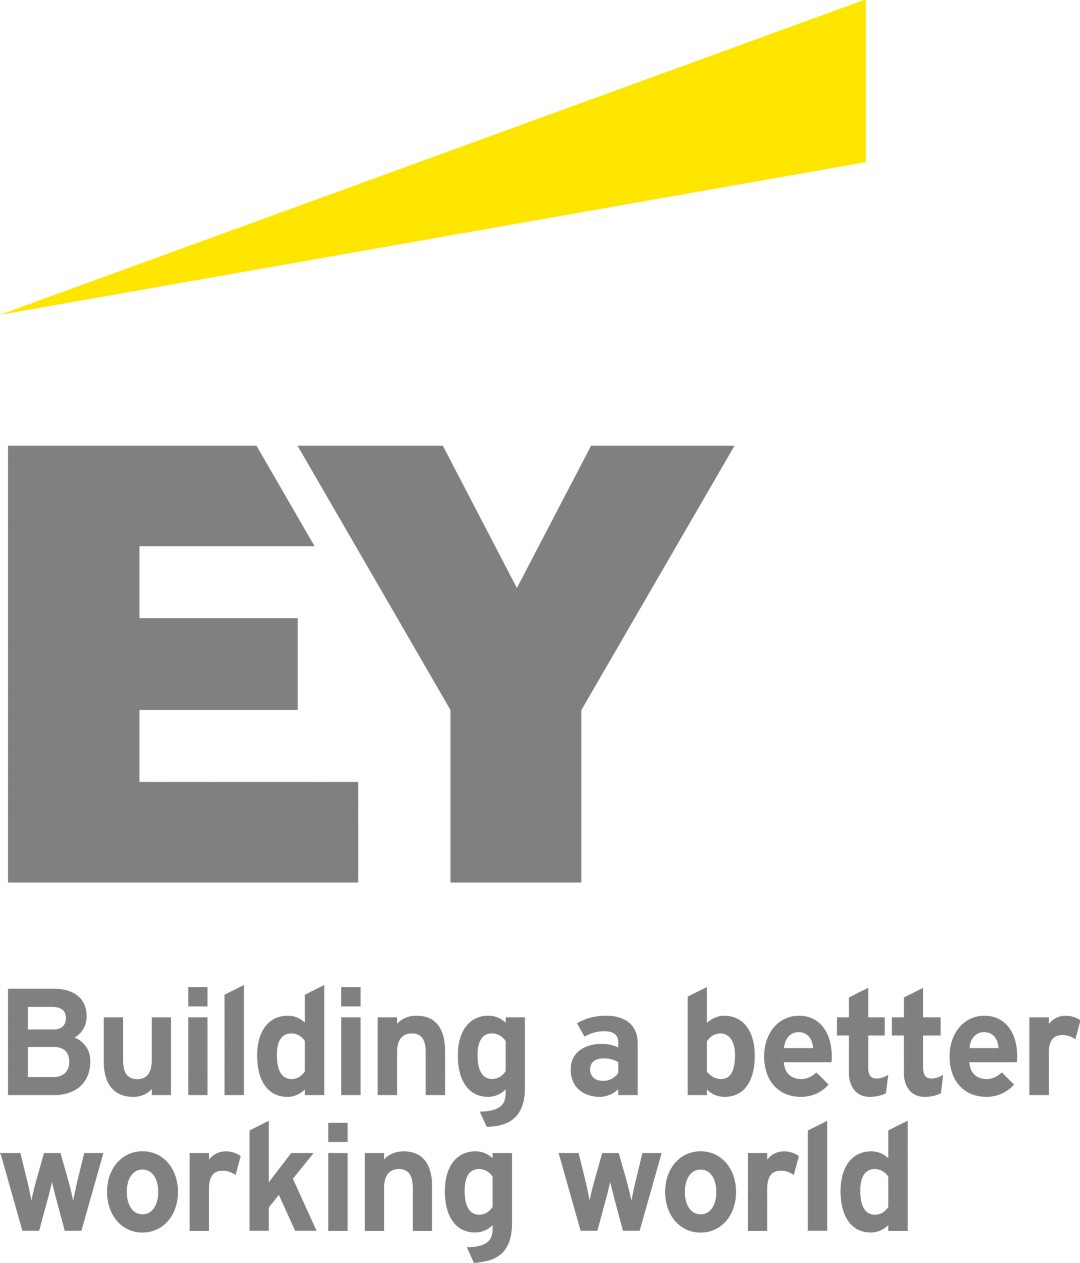 EY - Building a better working world.